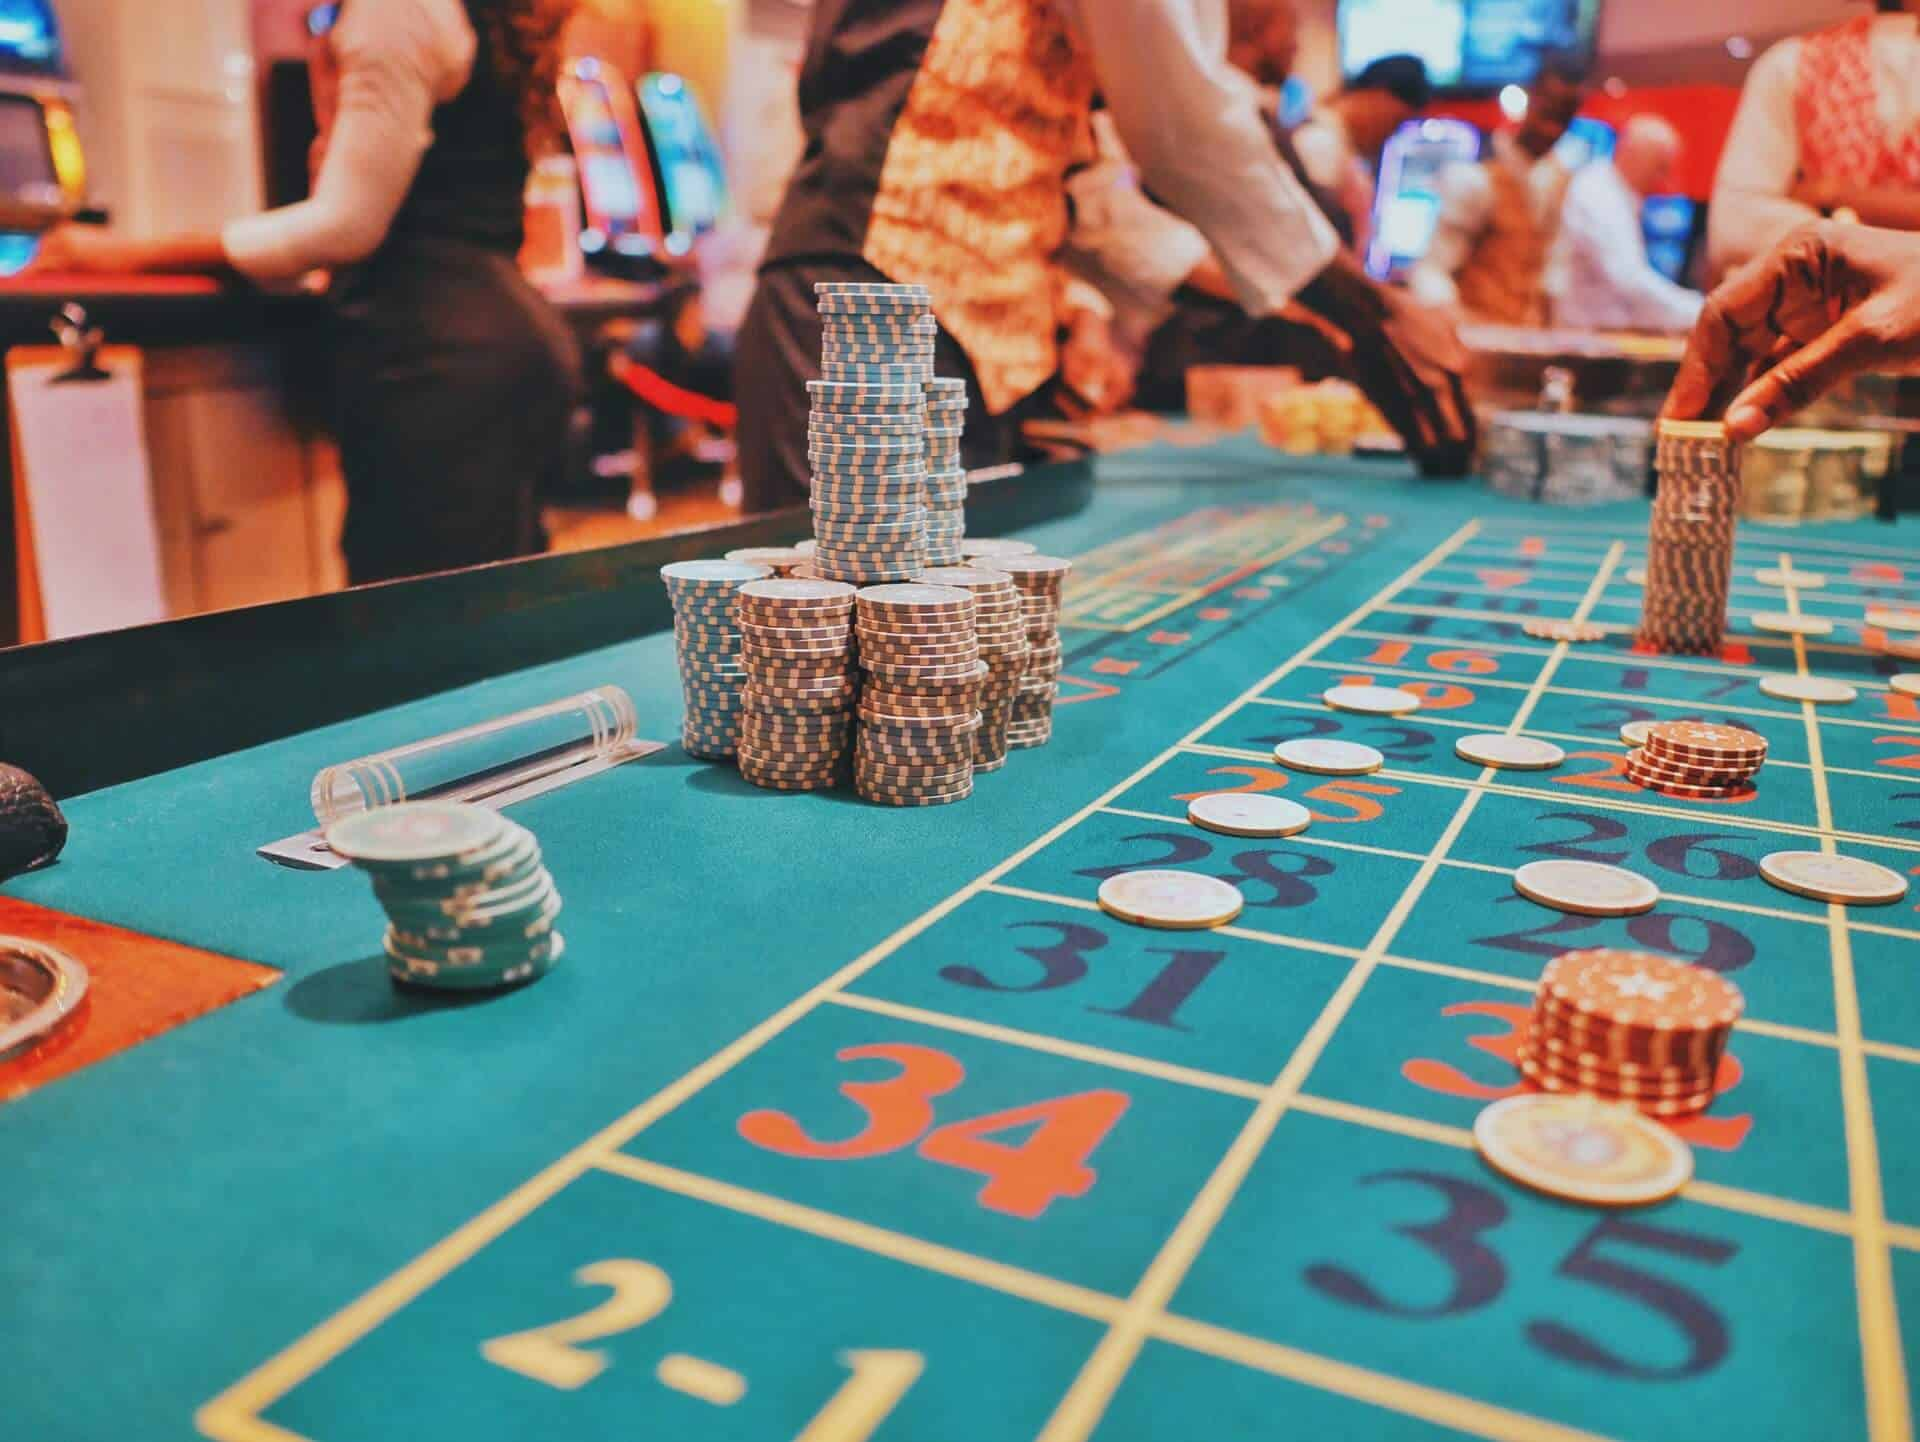 top table games - Top Table Games at the Casino